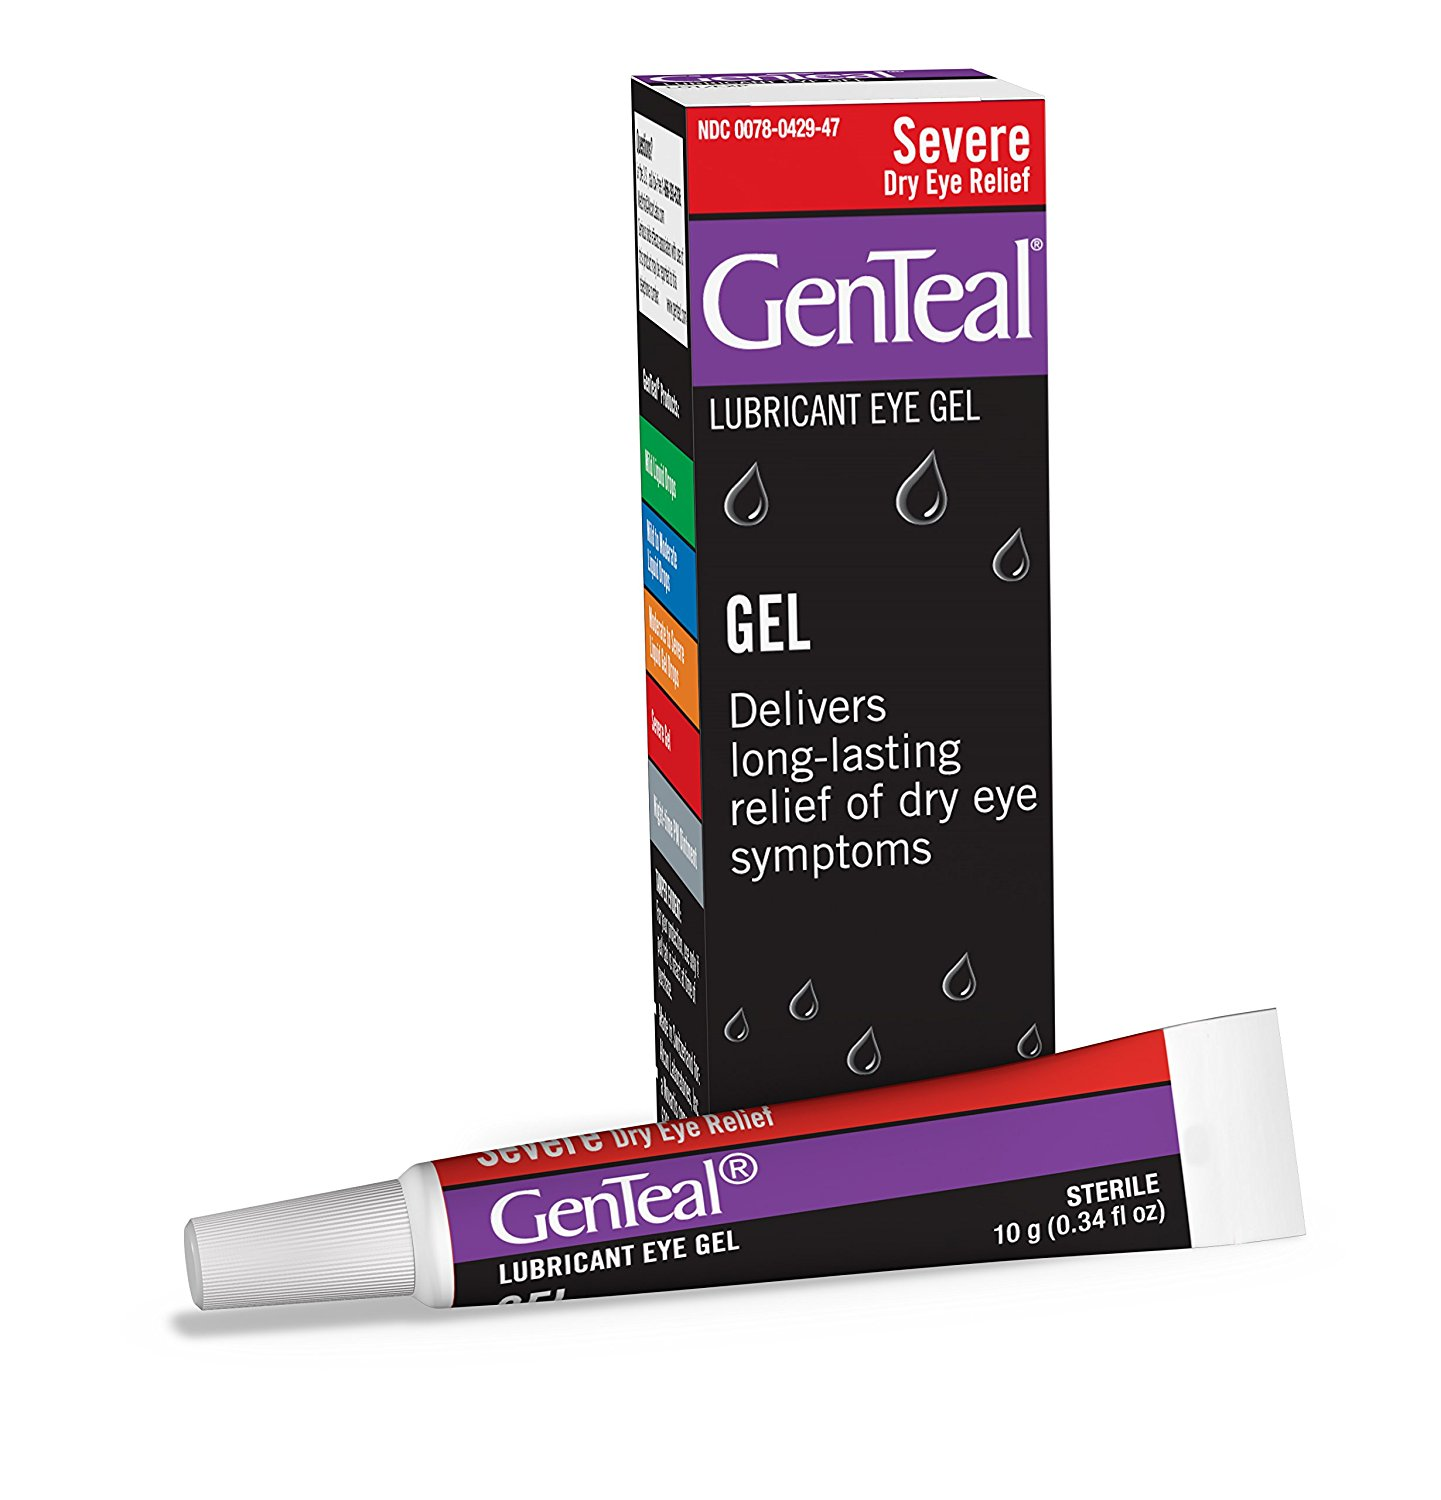 Genteal Gel, 0.34 Fl OZ, GenTeal 05 Dry Eye 034 Moderate 15ml Tubes Ounce Pack Relief Fl g OZ Gel Twin Lubricant Genteal Extra Drops Value to Severe 20 By Alcon